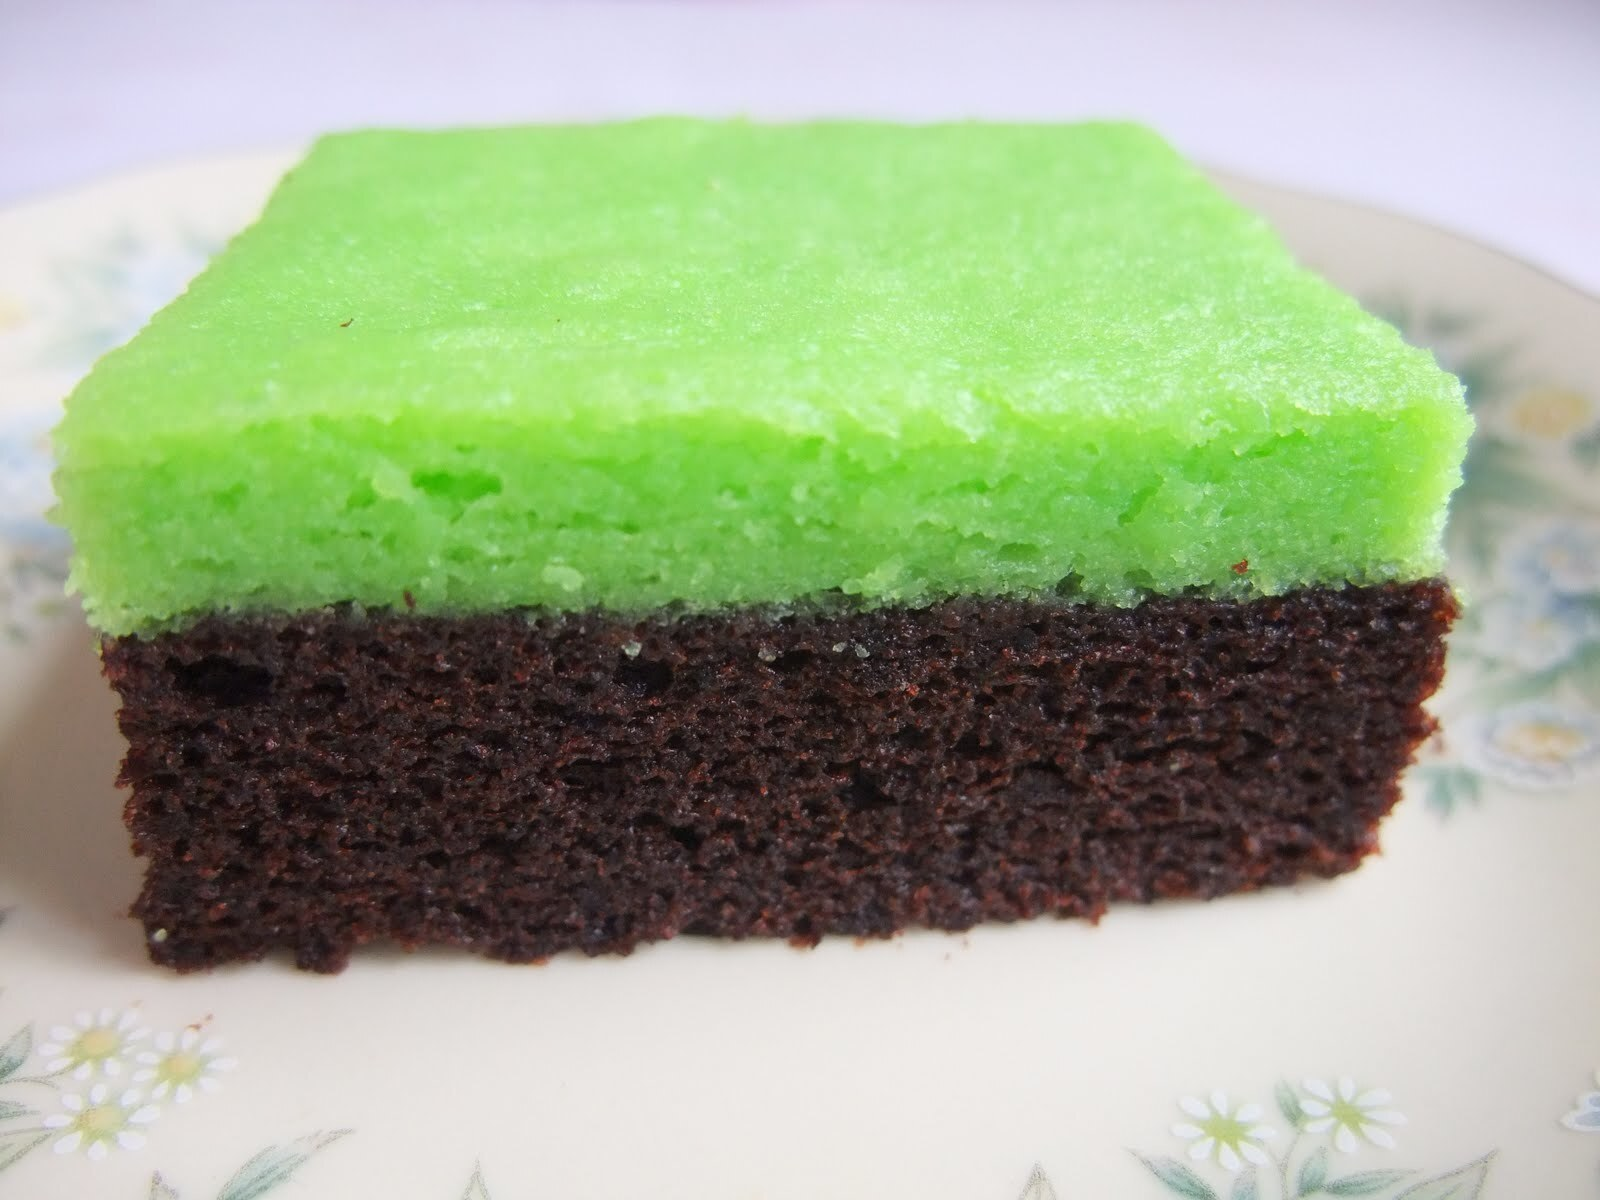 Steamed Chocolate Brownies Layer Green Cheese Cake